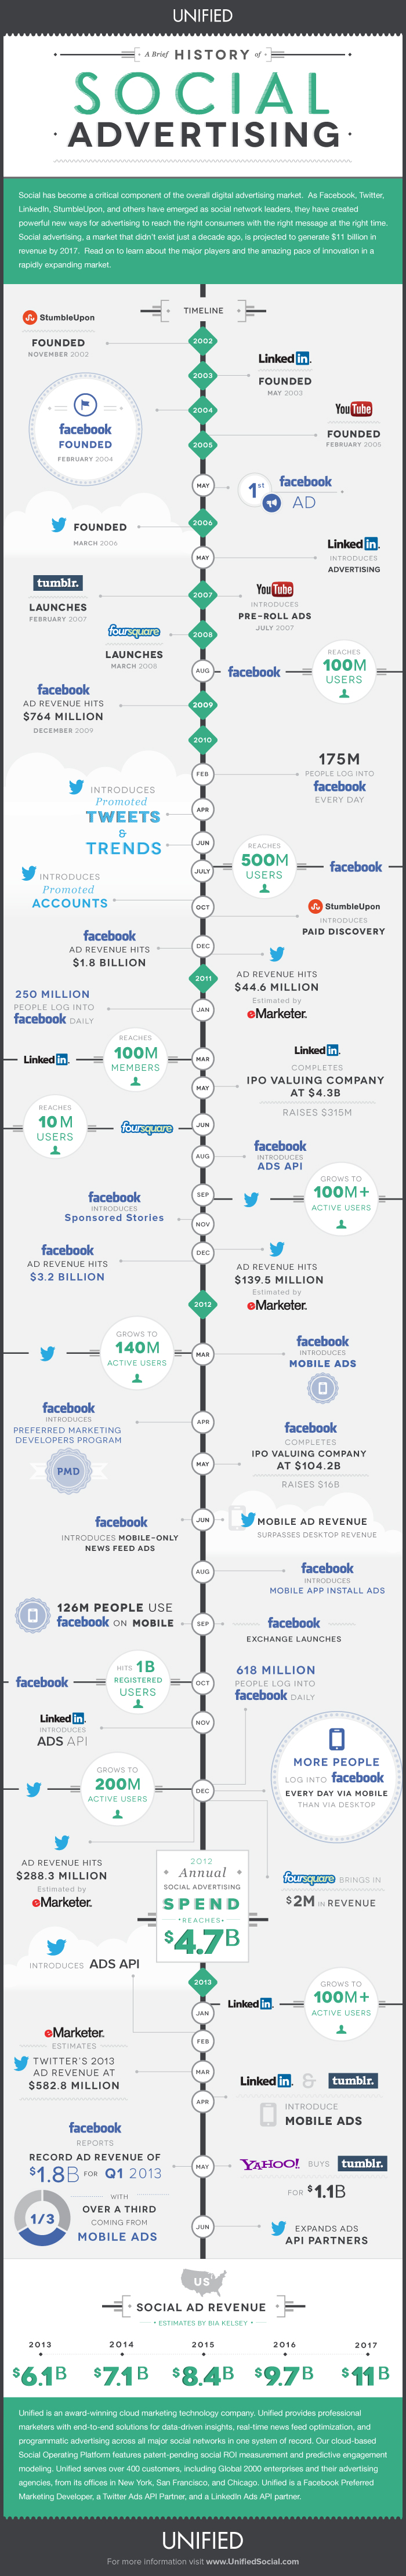 history of social advertising